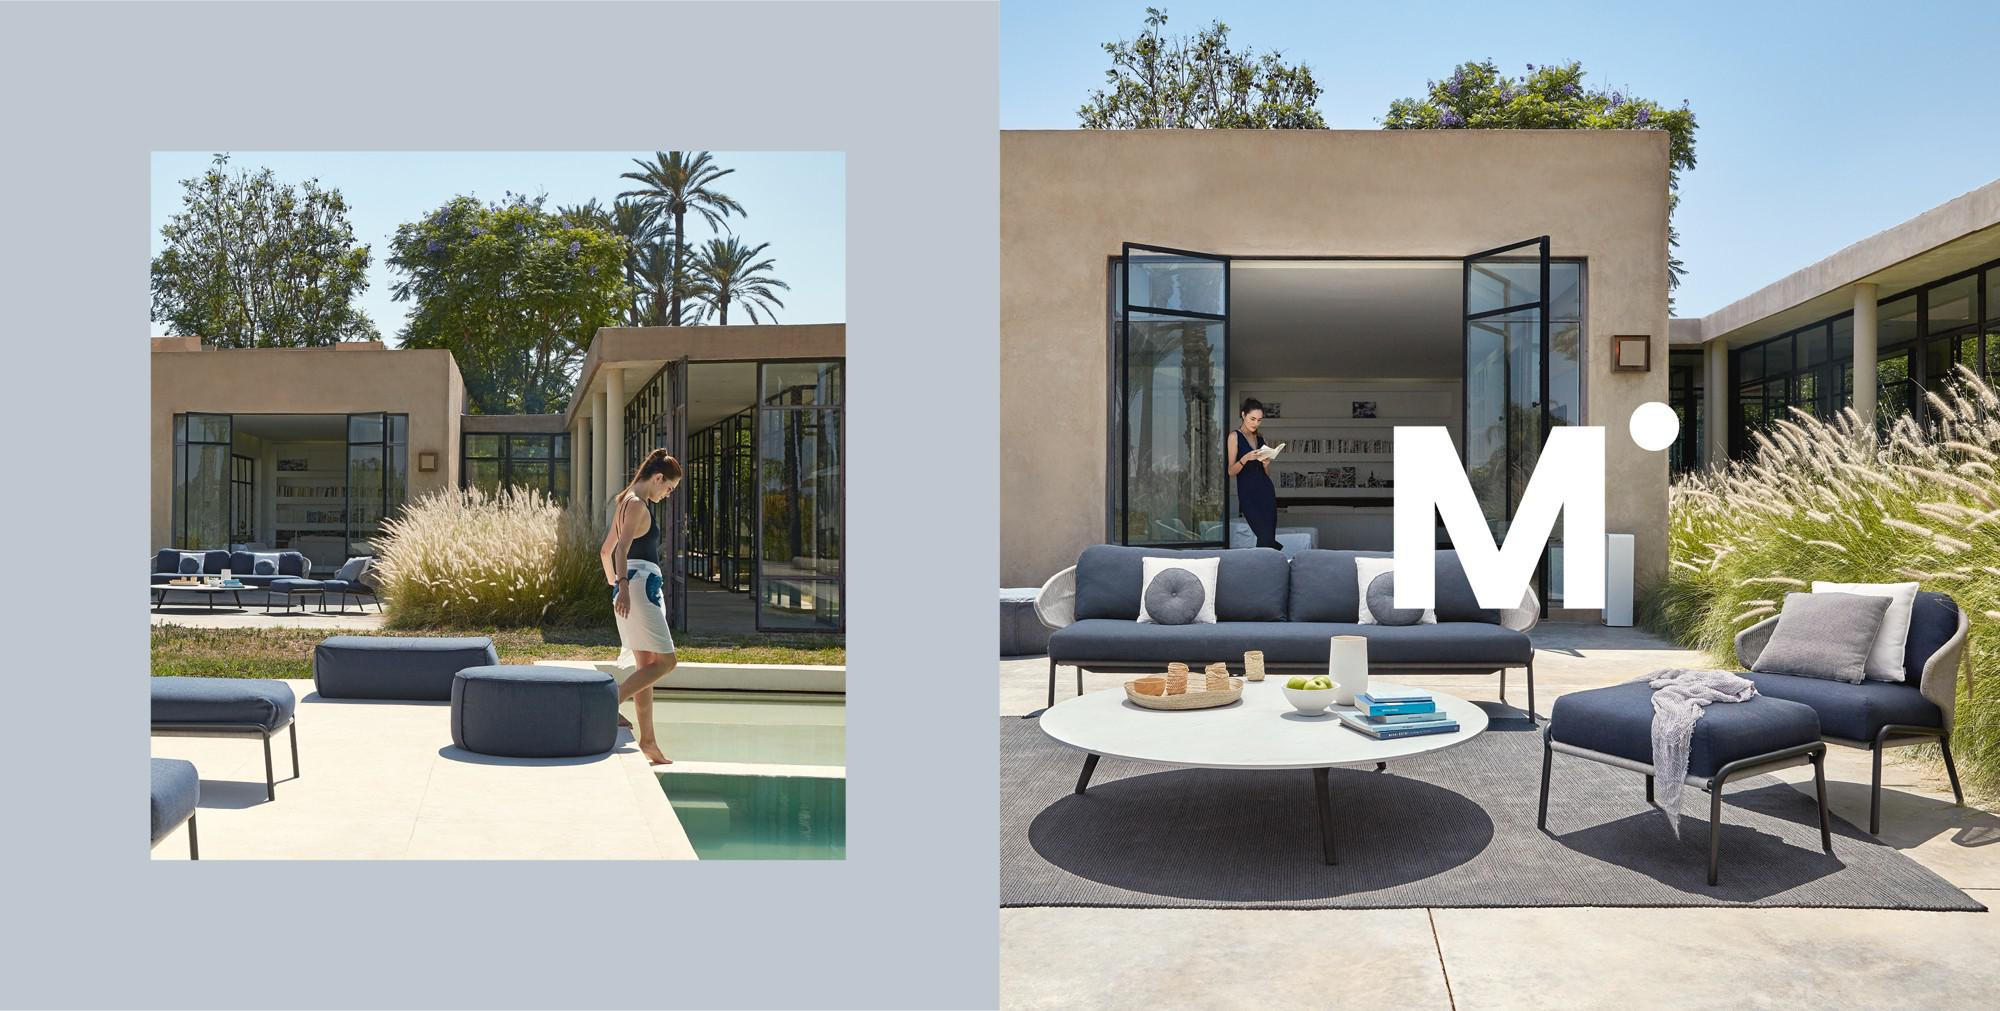 Radius sofa and loungers with Mood coffee table by the pool